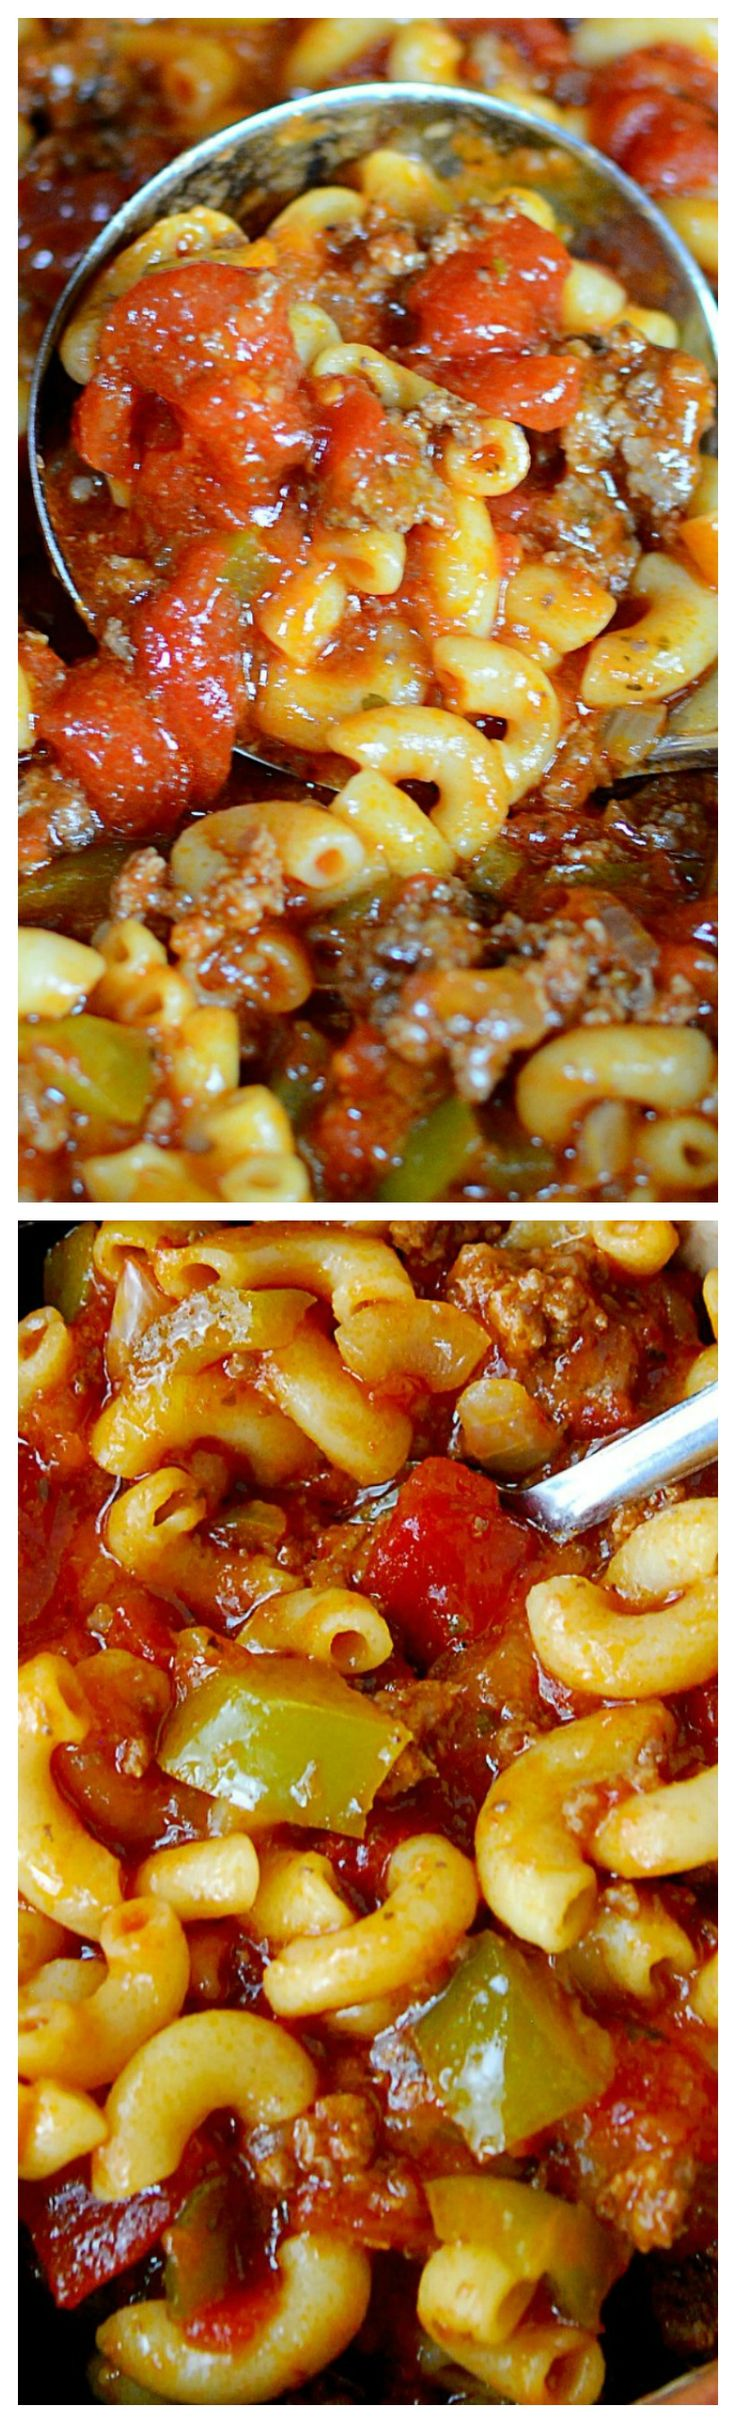 Nana's American Chop Suey ~ It tastes incredible! Our family called the American Style Spaghetti! I love it.  Wow, it appears to be the exact same except we never used Adobo seasoning......